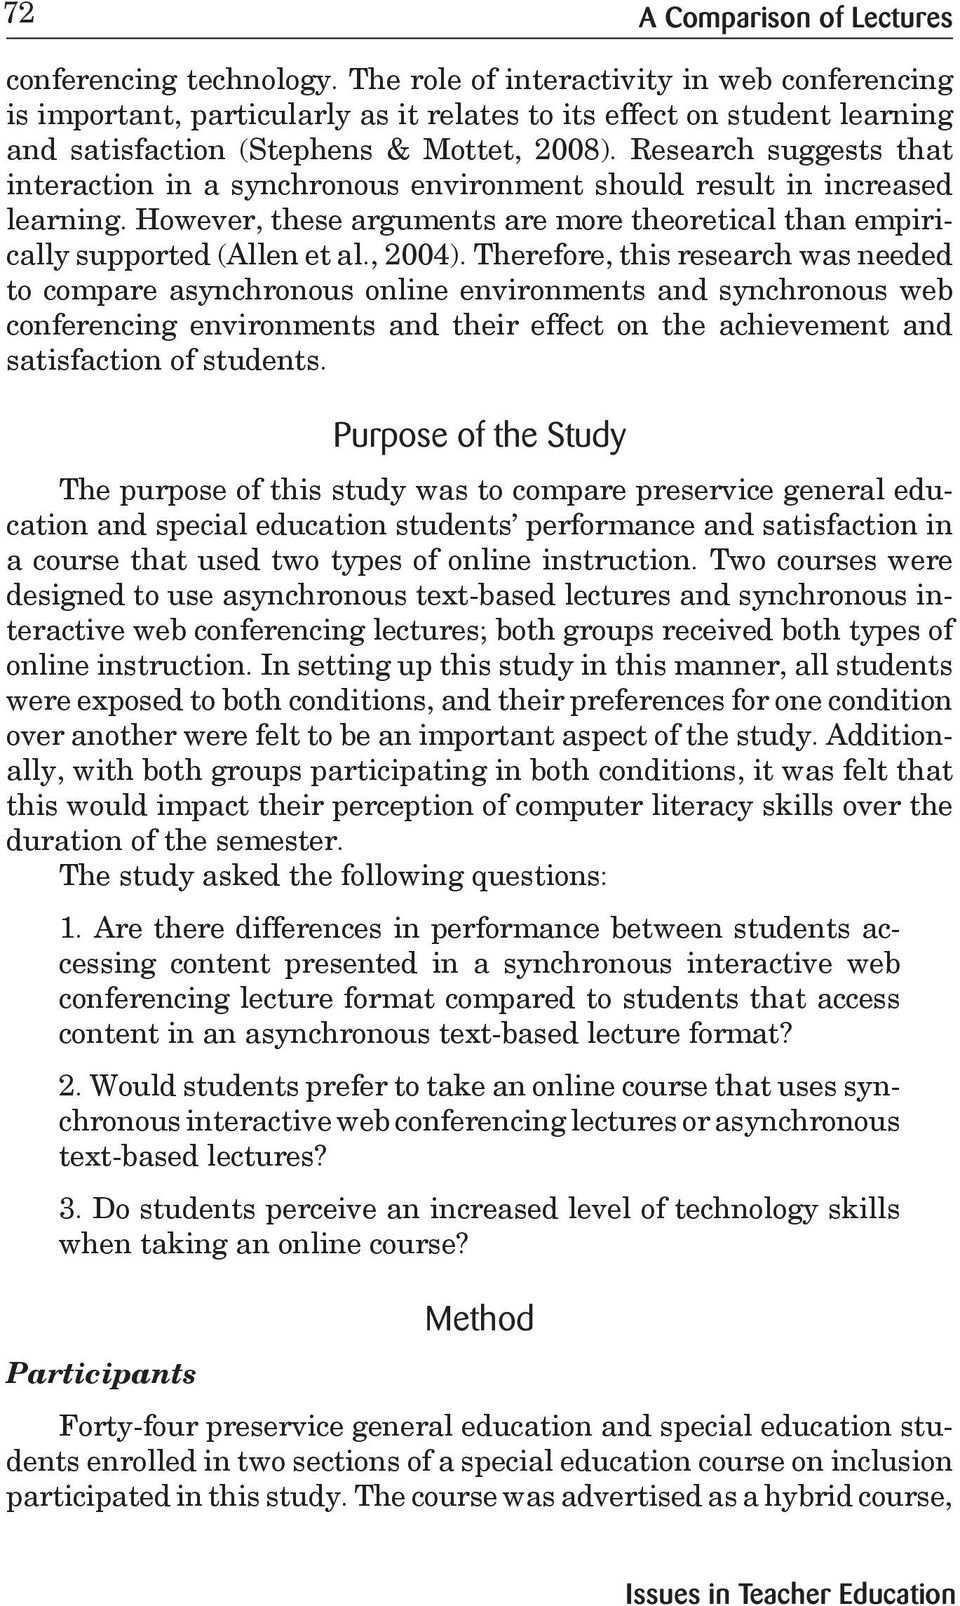 Research suggests that interaction in a synchronous environment should result in increased learning. However, these arguments are more theoretical than empirically supported (Allen et al., 2004).